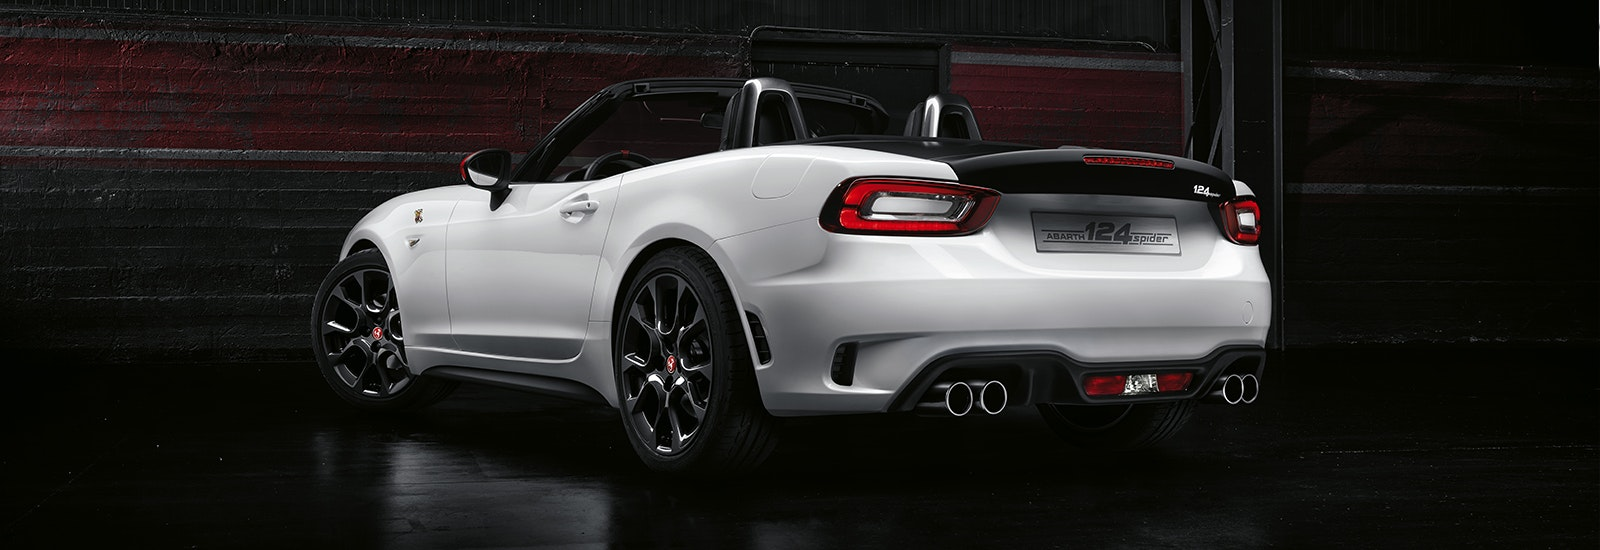 Abarth 124 Spider Price Specs And Release Date Carwow